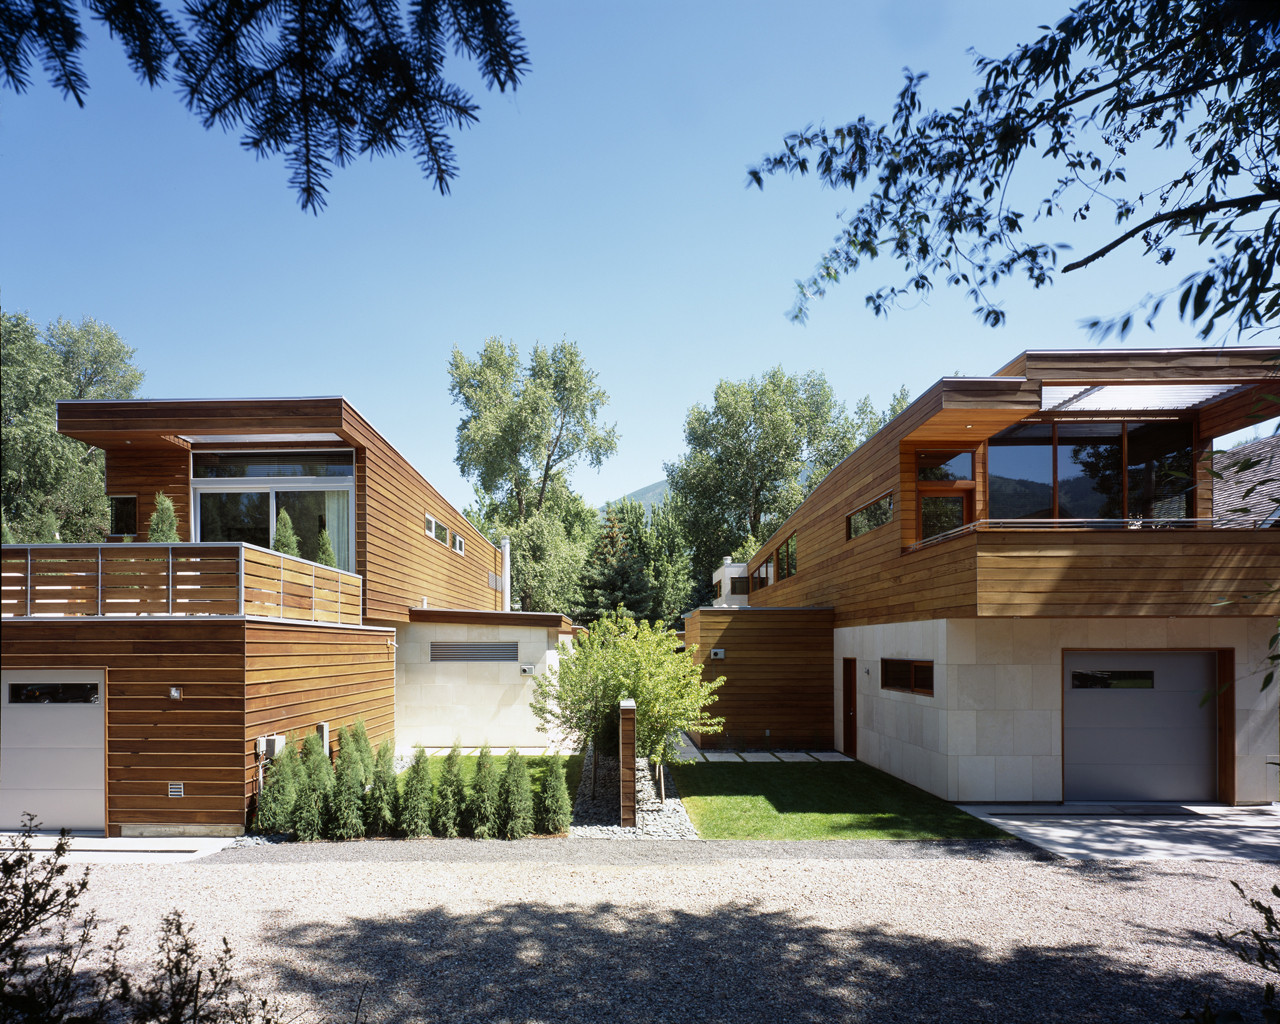 The nove 1 residences by studio b architects in aspen for Twin home plans